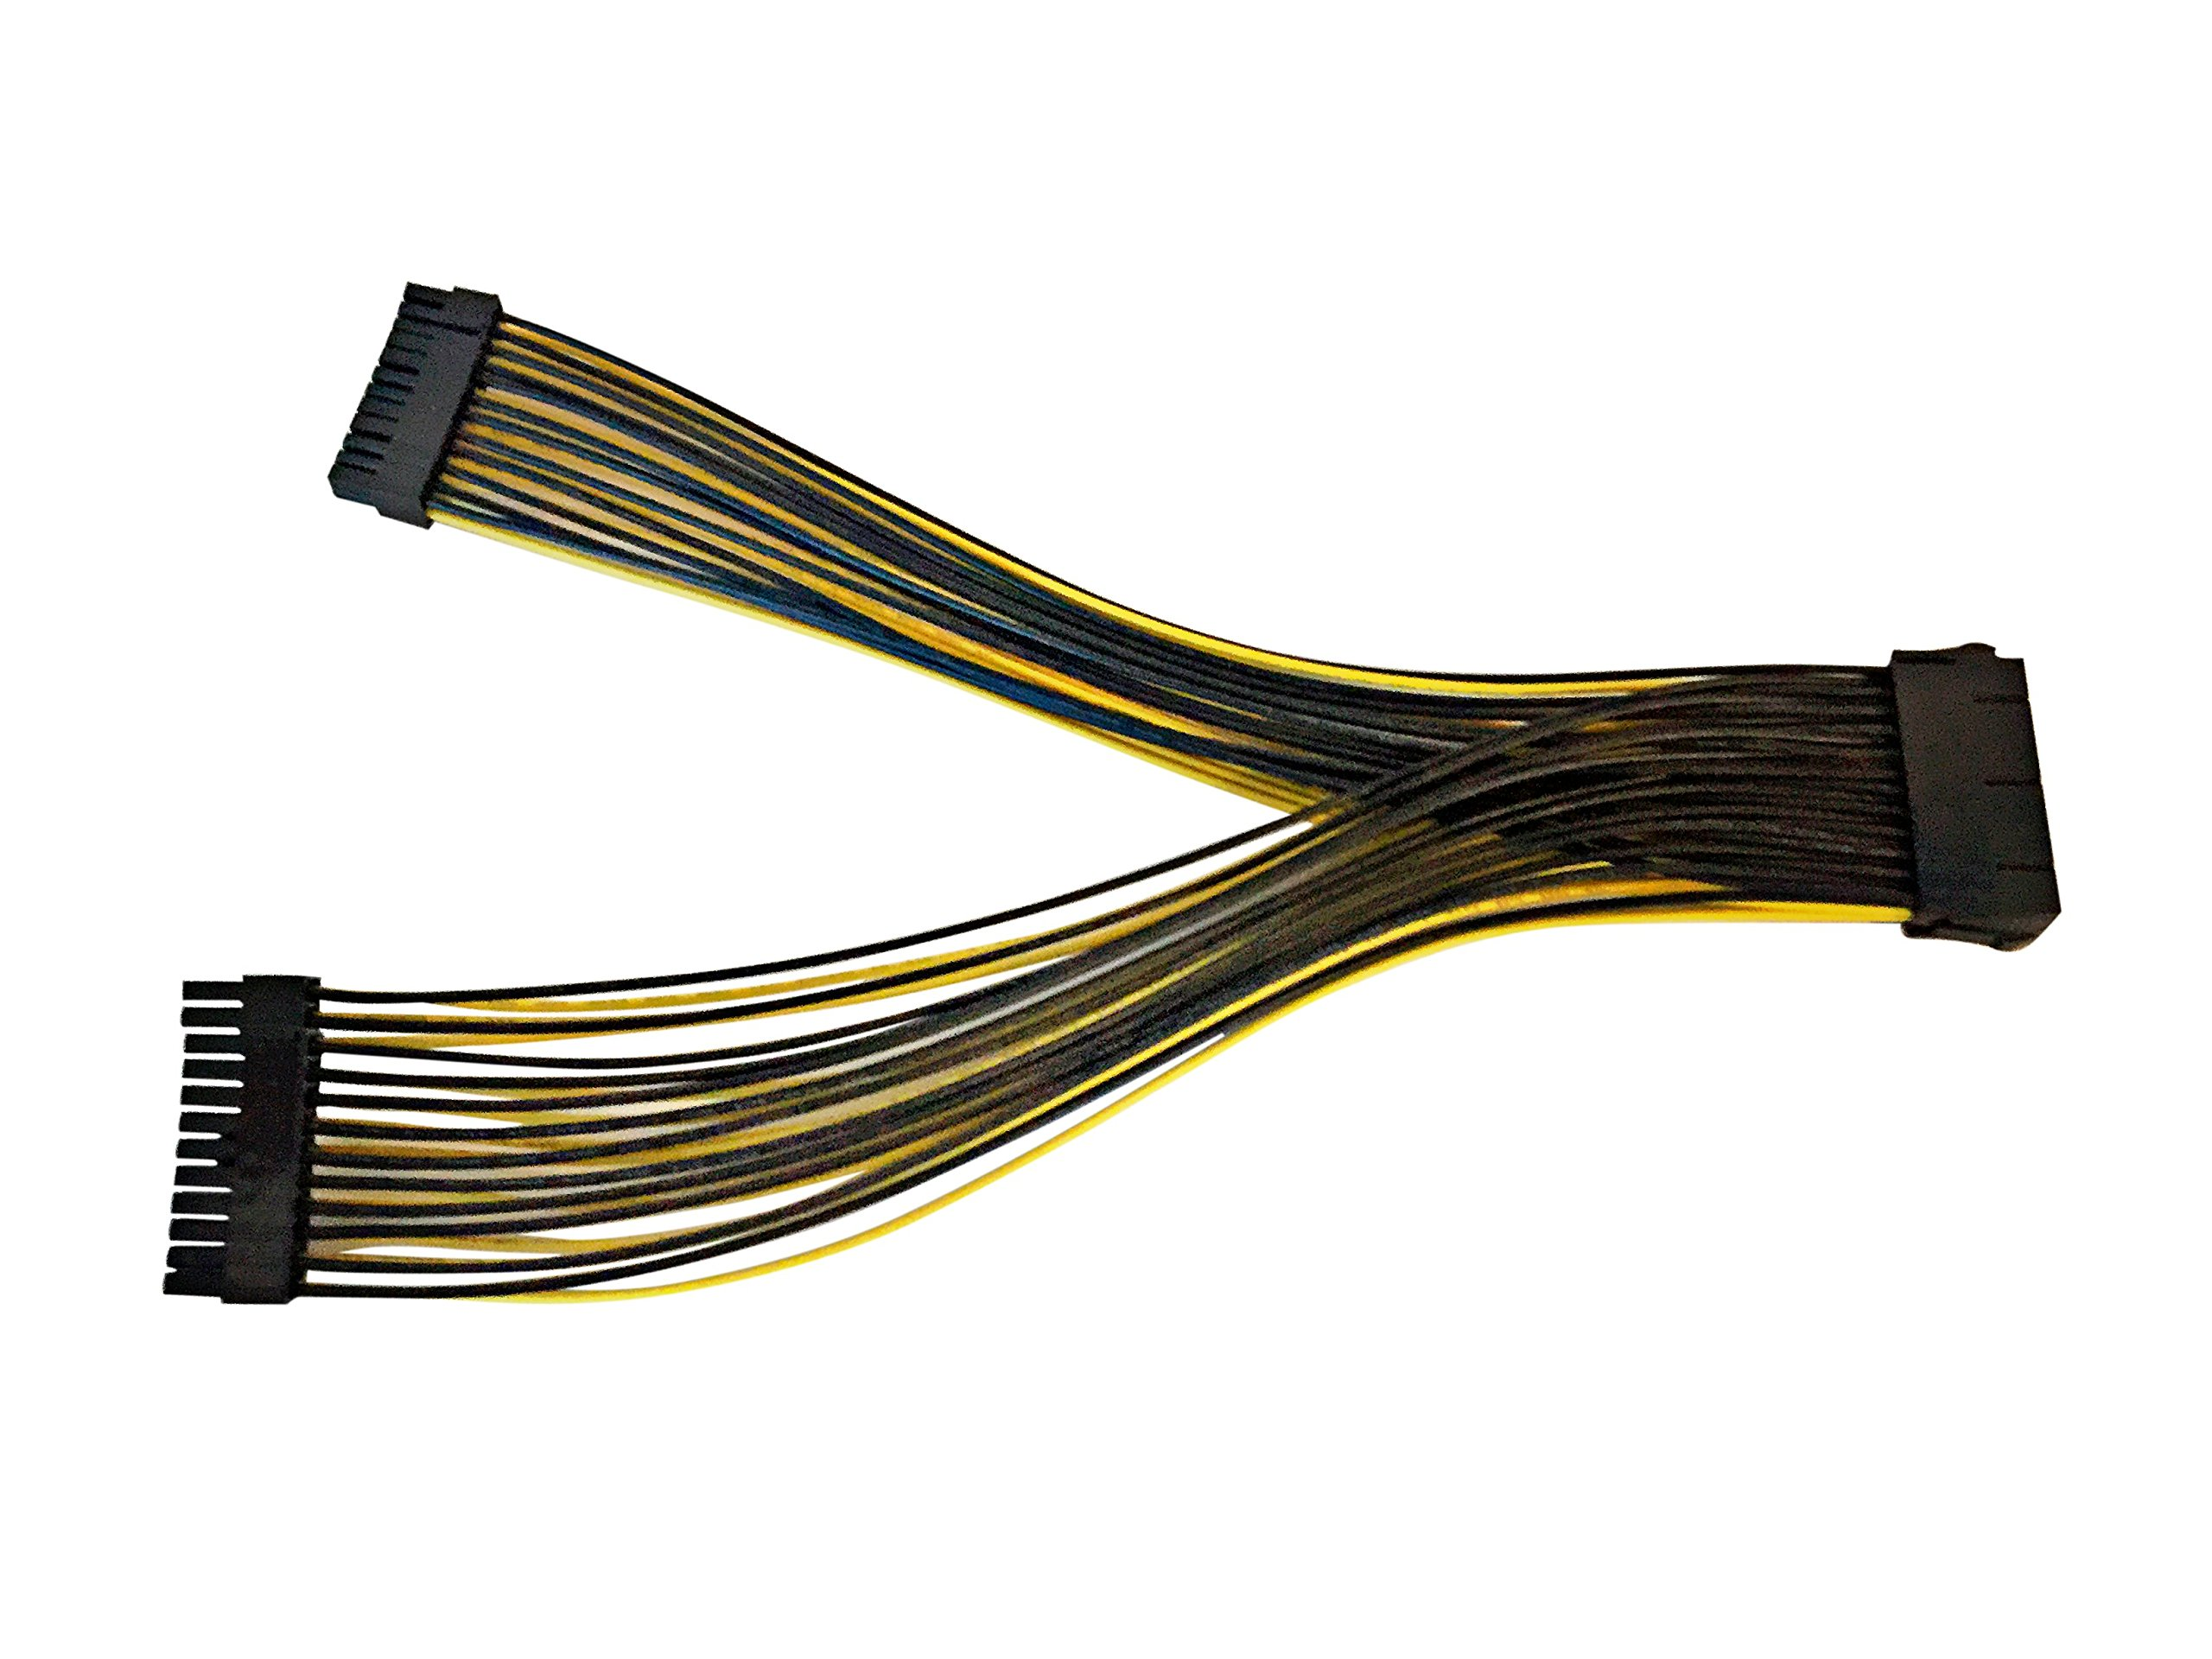 Eyeboot ATX 24-Pin Female to 24-Pin Male Y Splitter Power Cable